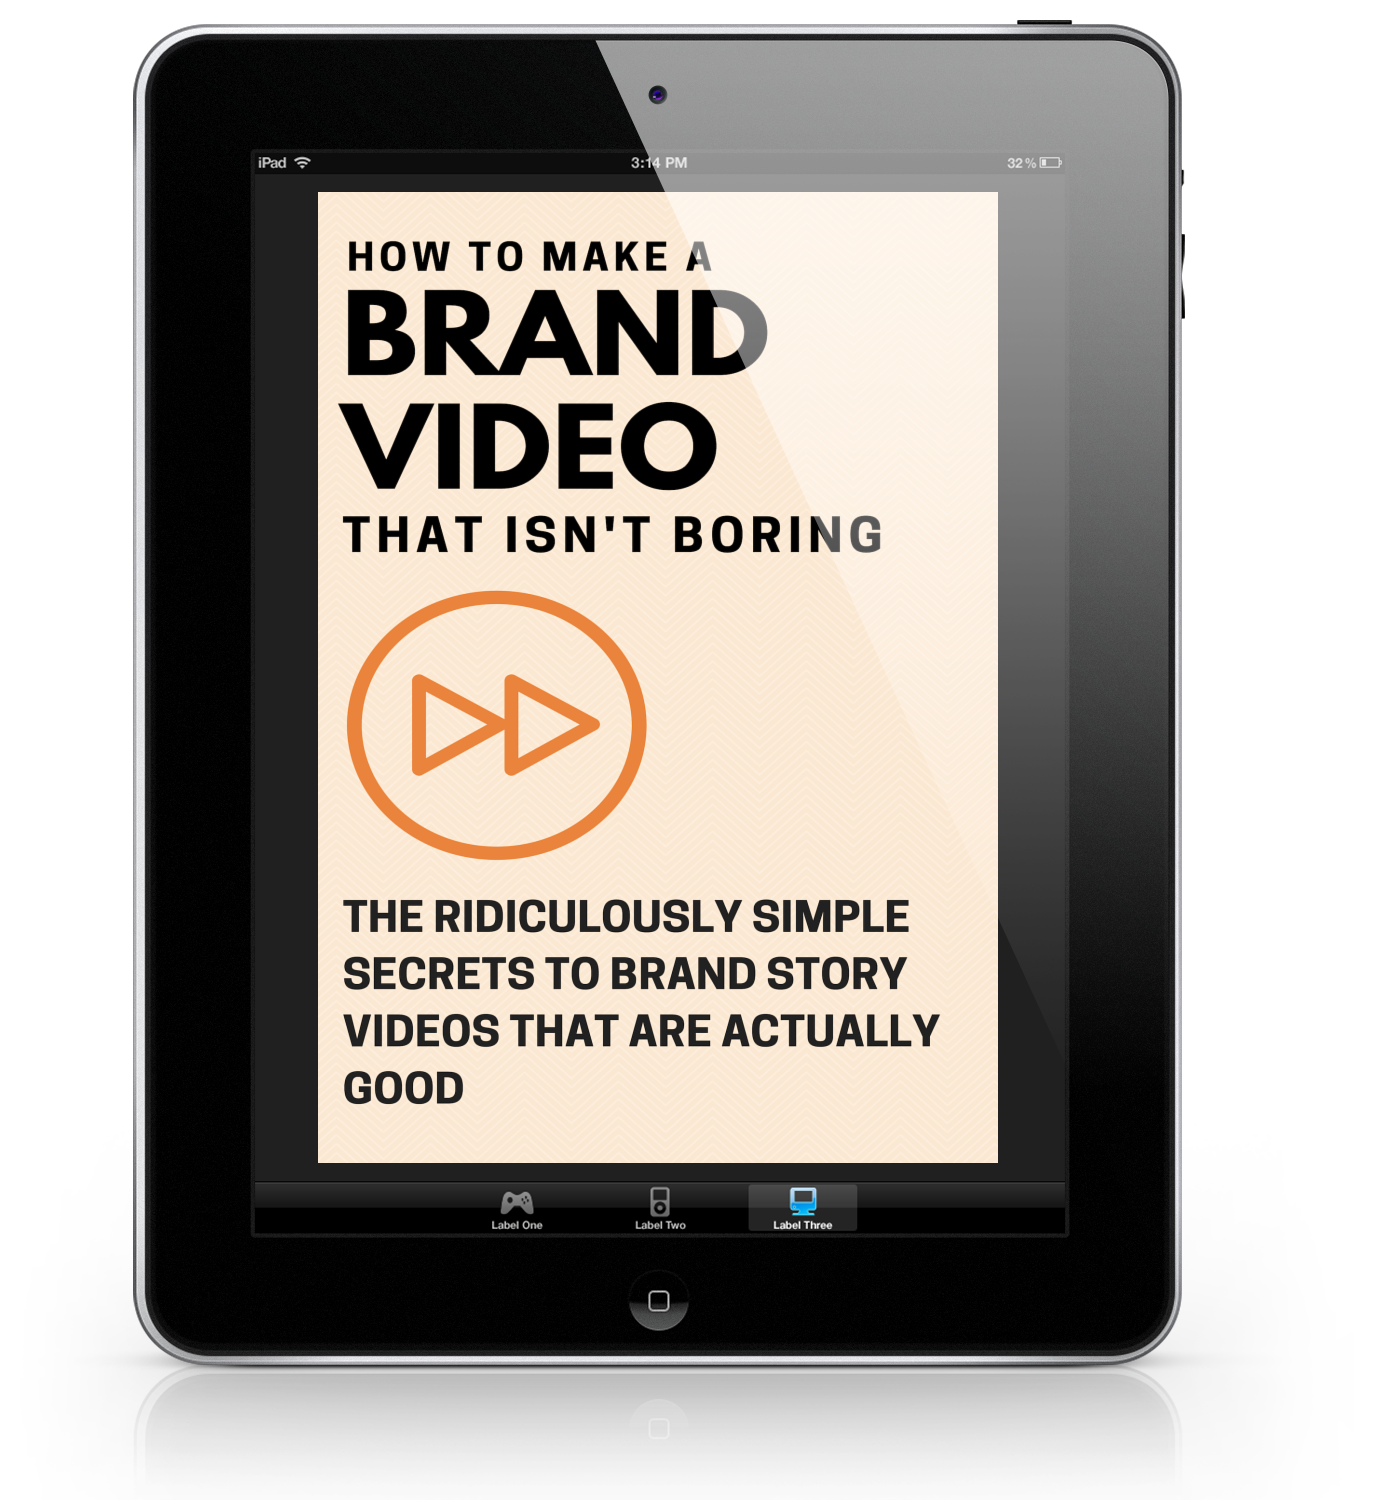 How to Make a Brand Video that Isn't Boring Online Course